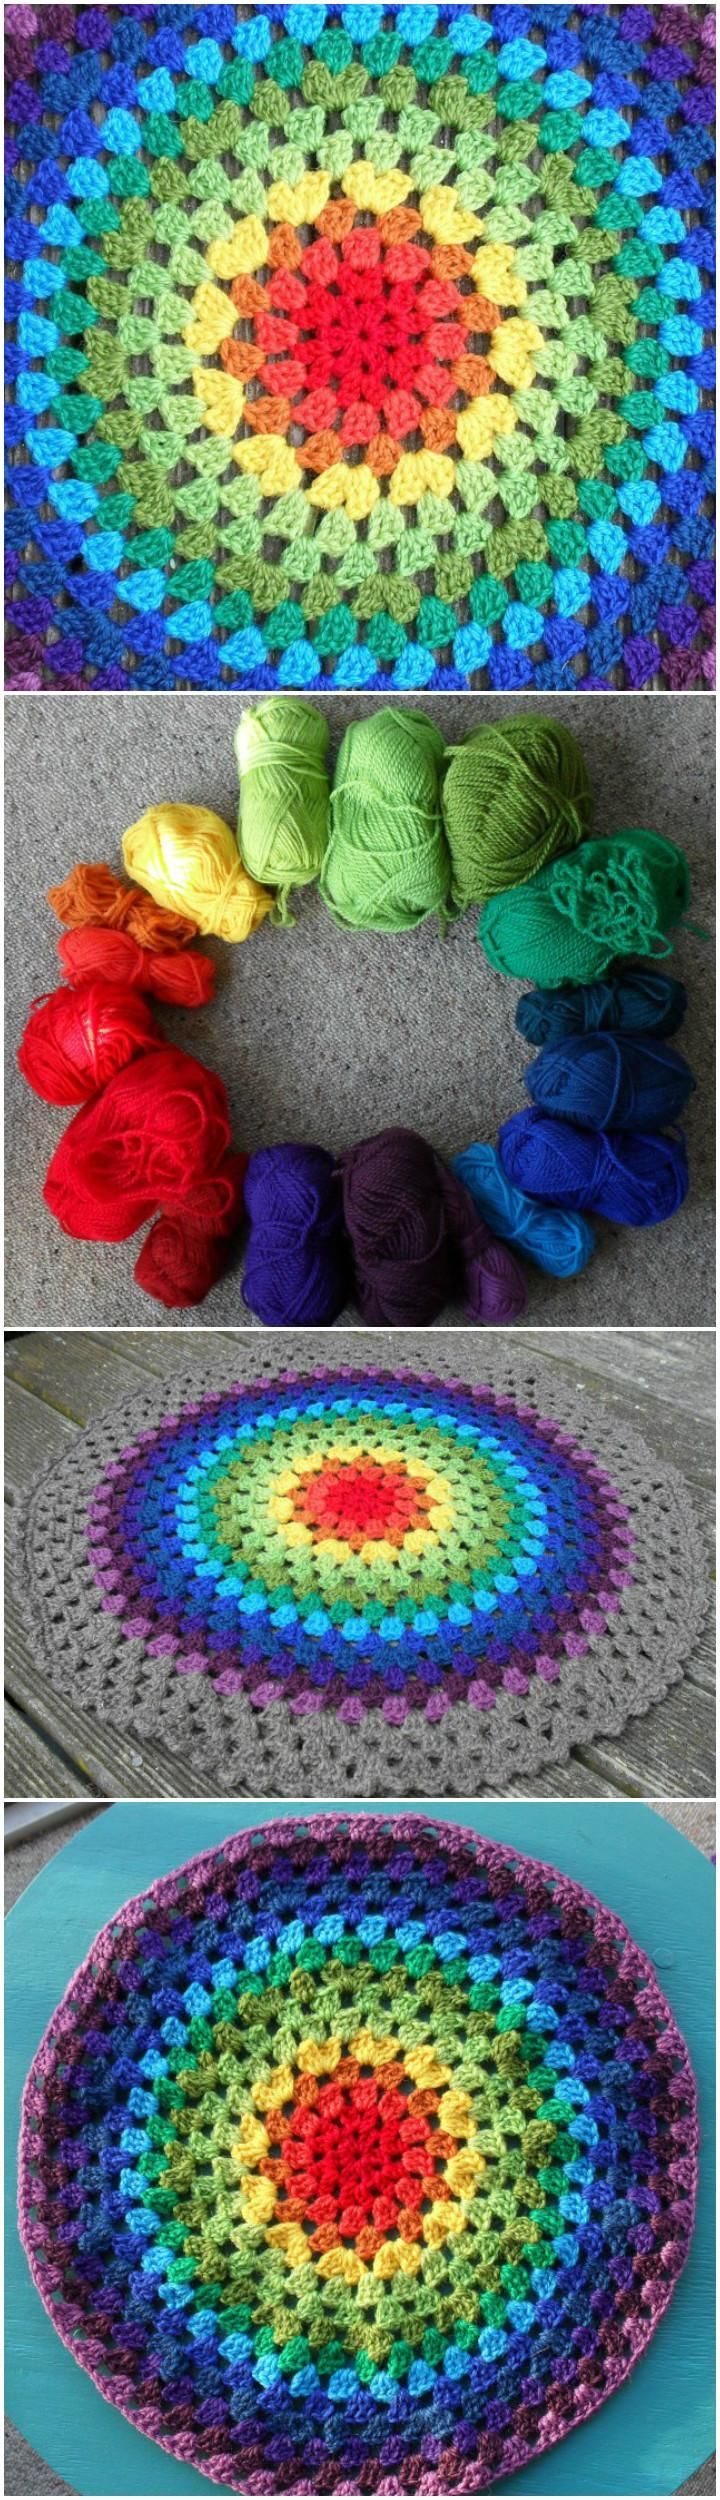 60+ Free Crochet Mandala Patterns - Page 2 of 12 | Beautiful ...